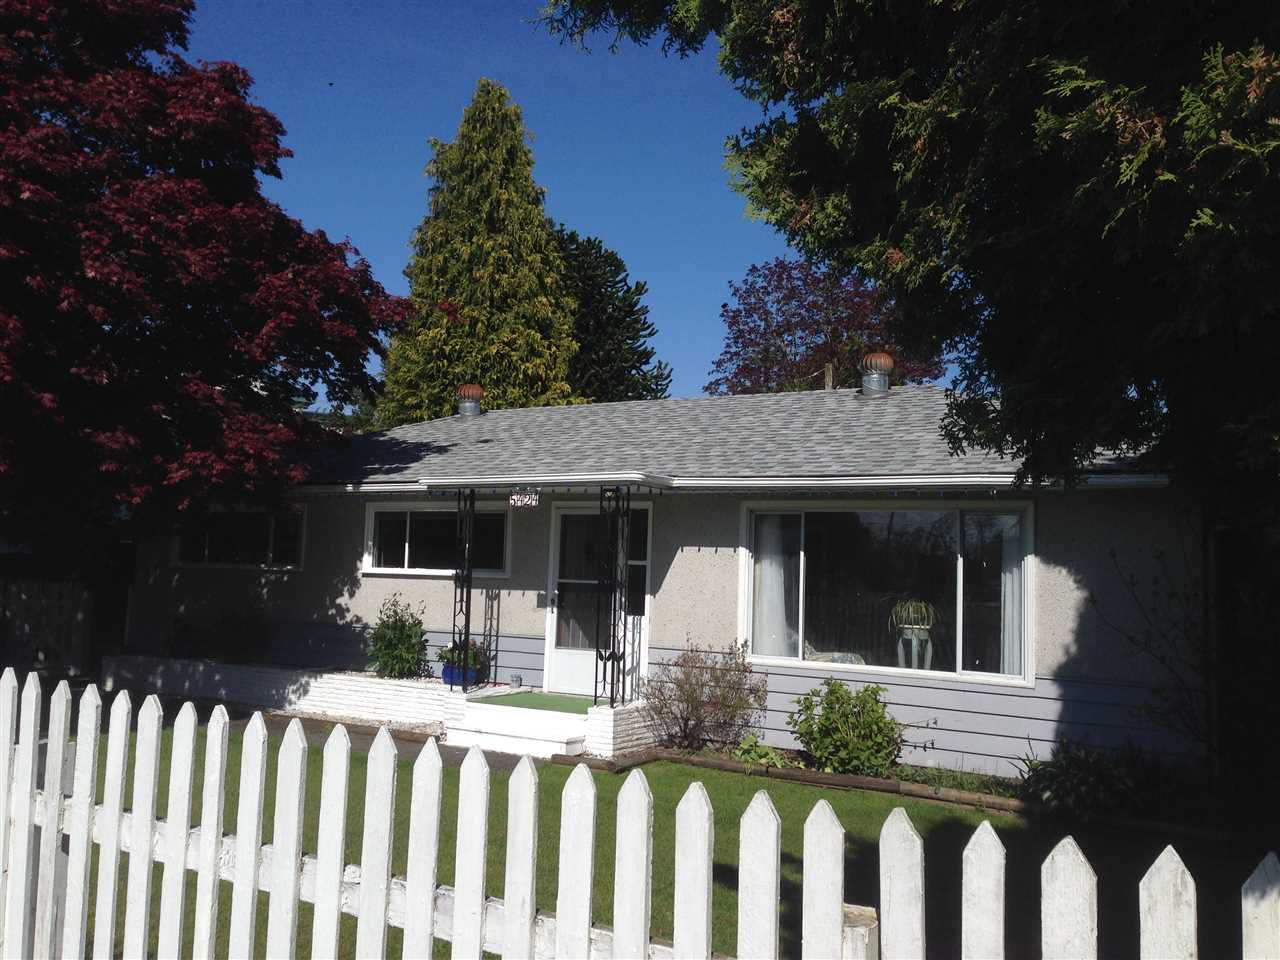 """Main Photo: 5424 207 Street in Langley: Langley City House for sale in """"LANGLEY CITY"""" : MLS®# R2164958"""